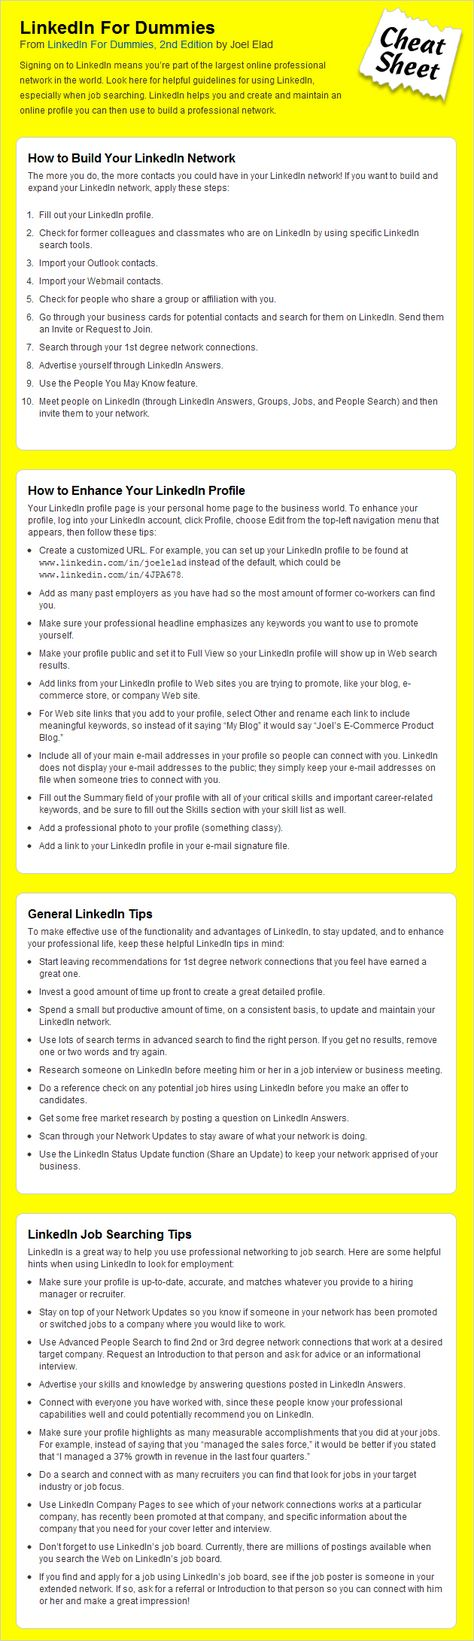 LinkedIn Cheat Sheet For Dummies Business - resumes for dummies